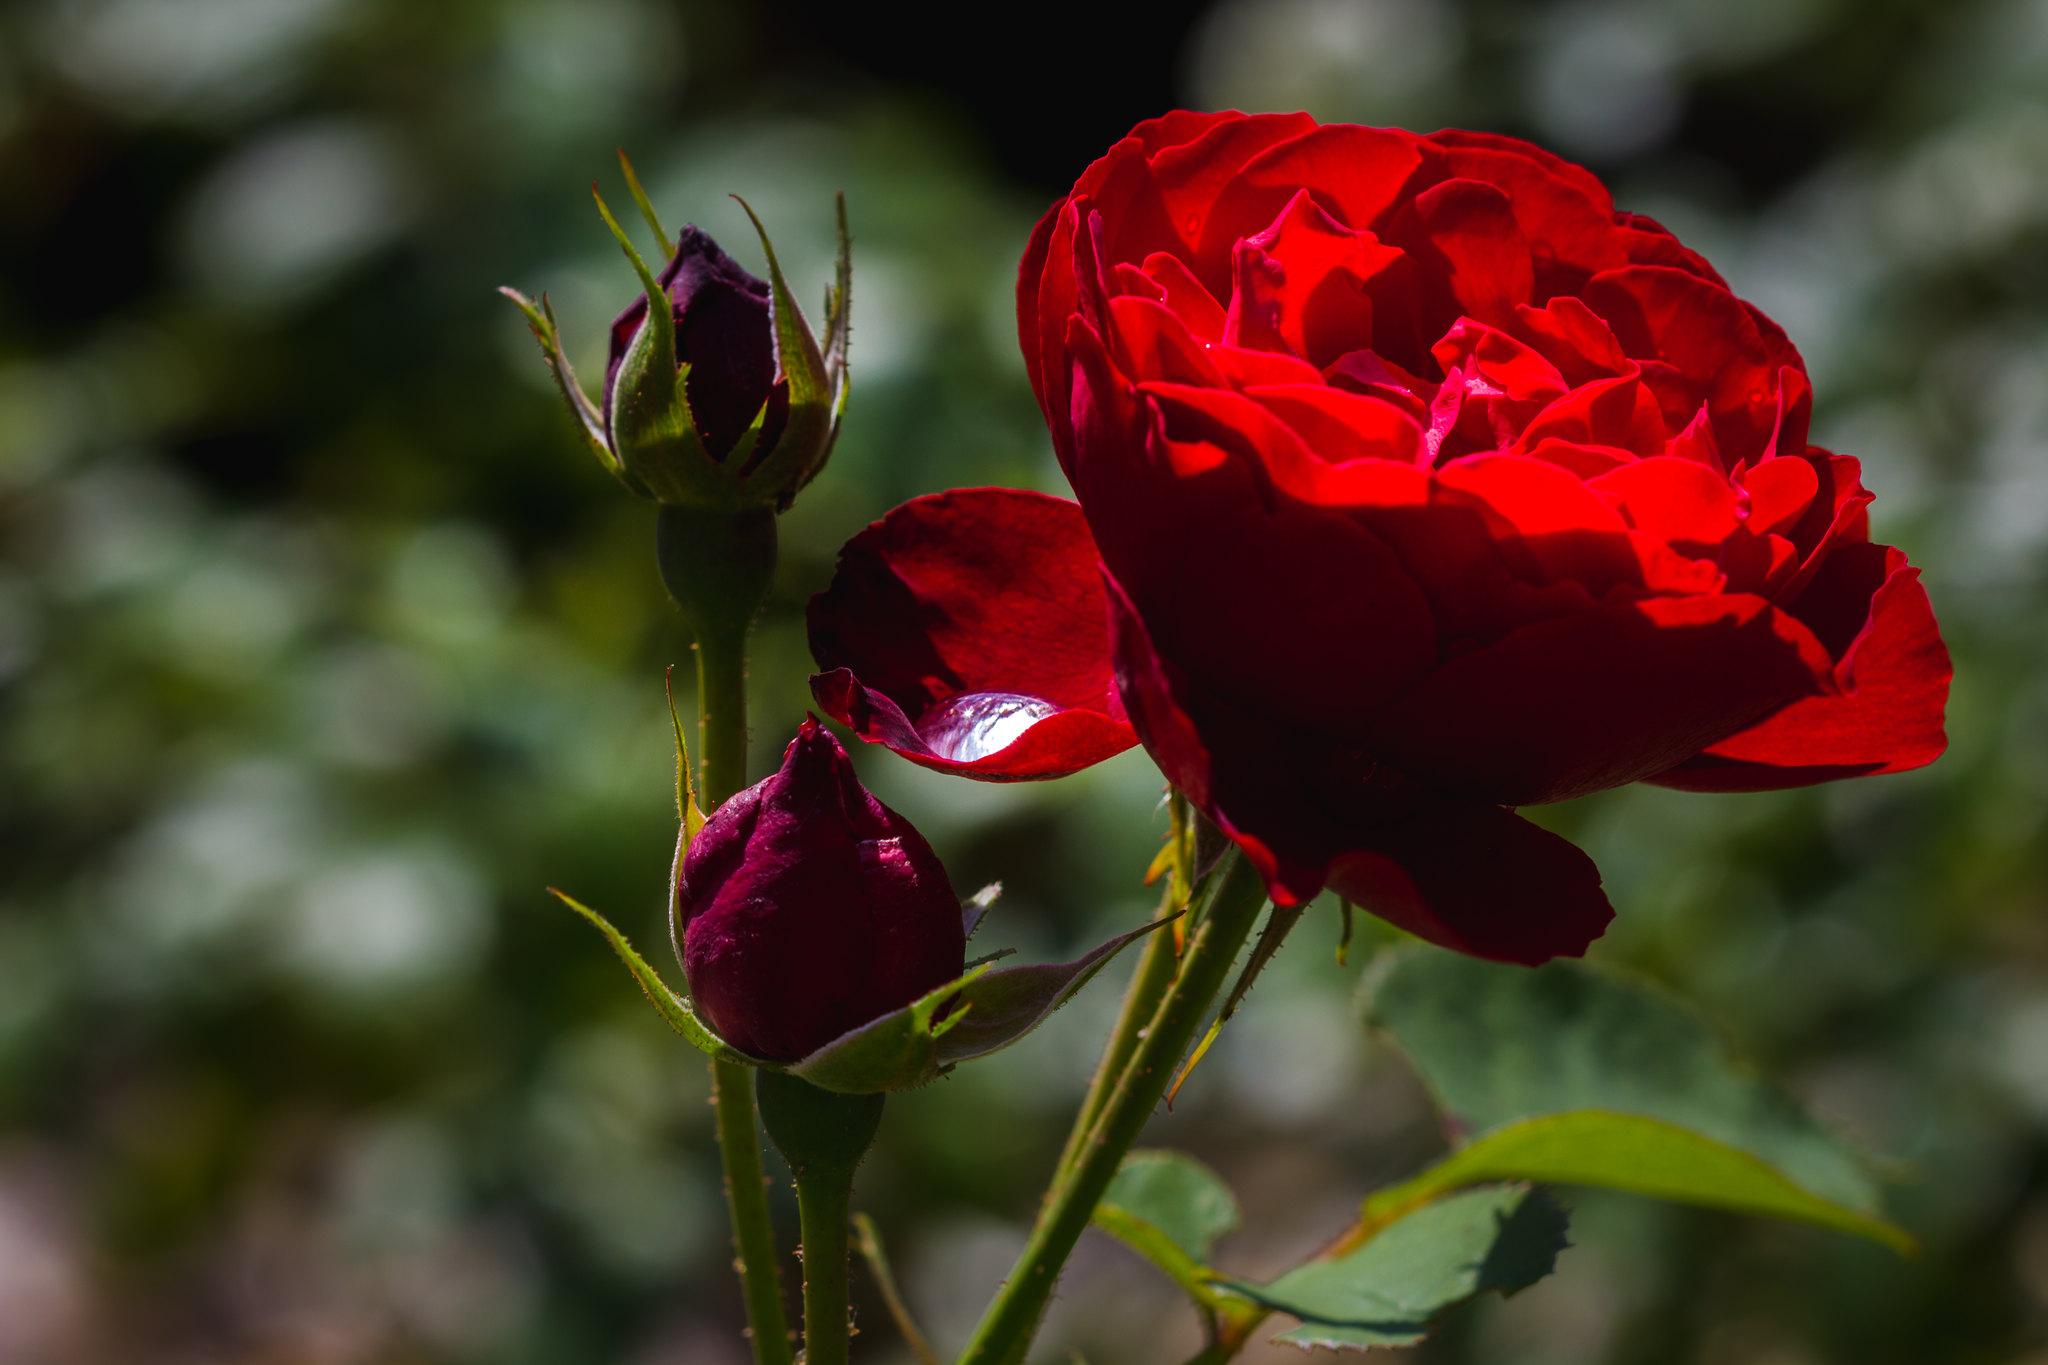 Red rose after summer rain